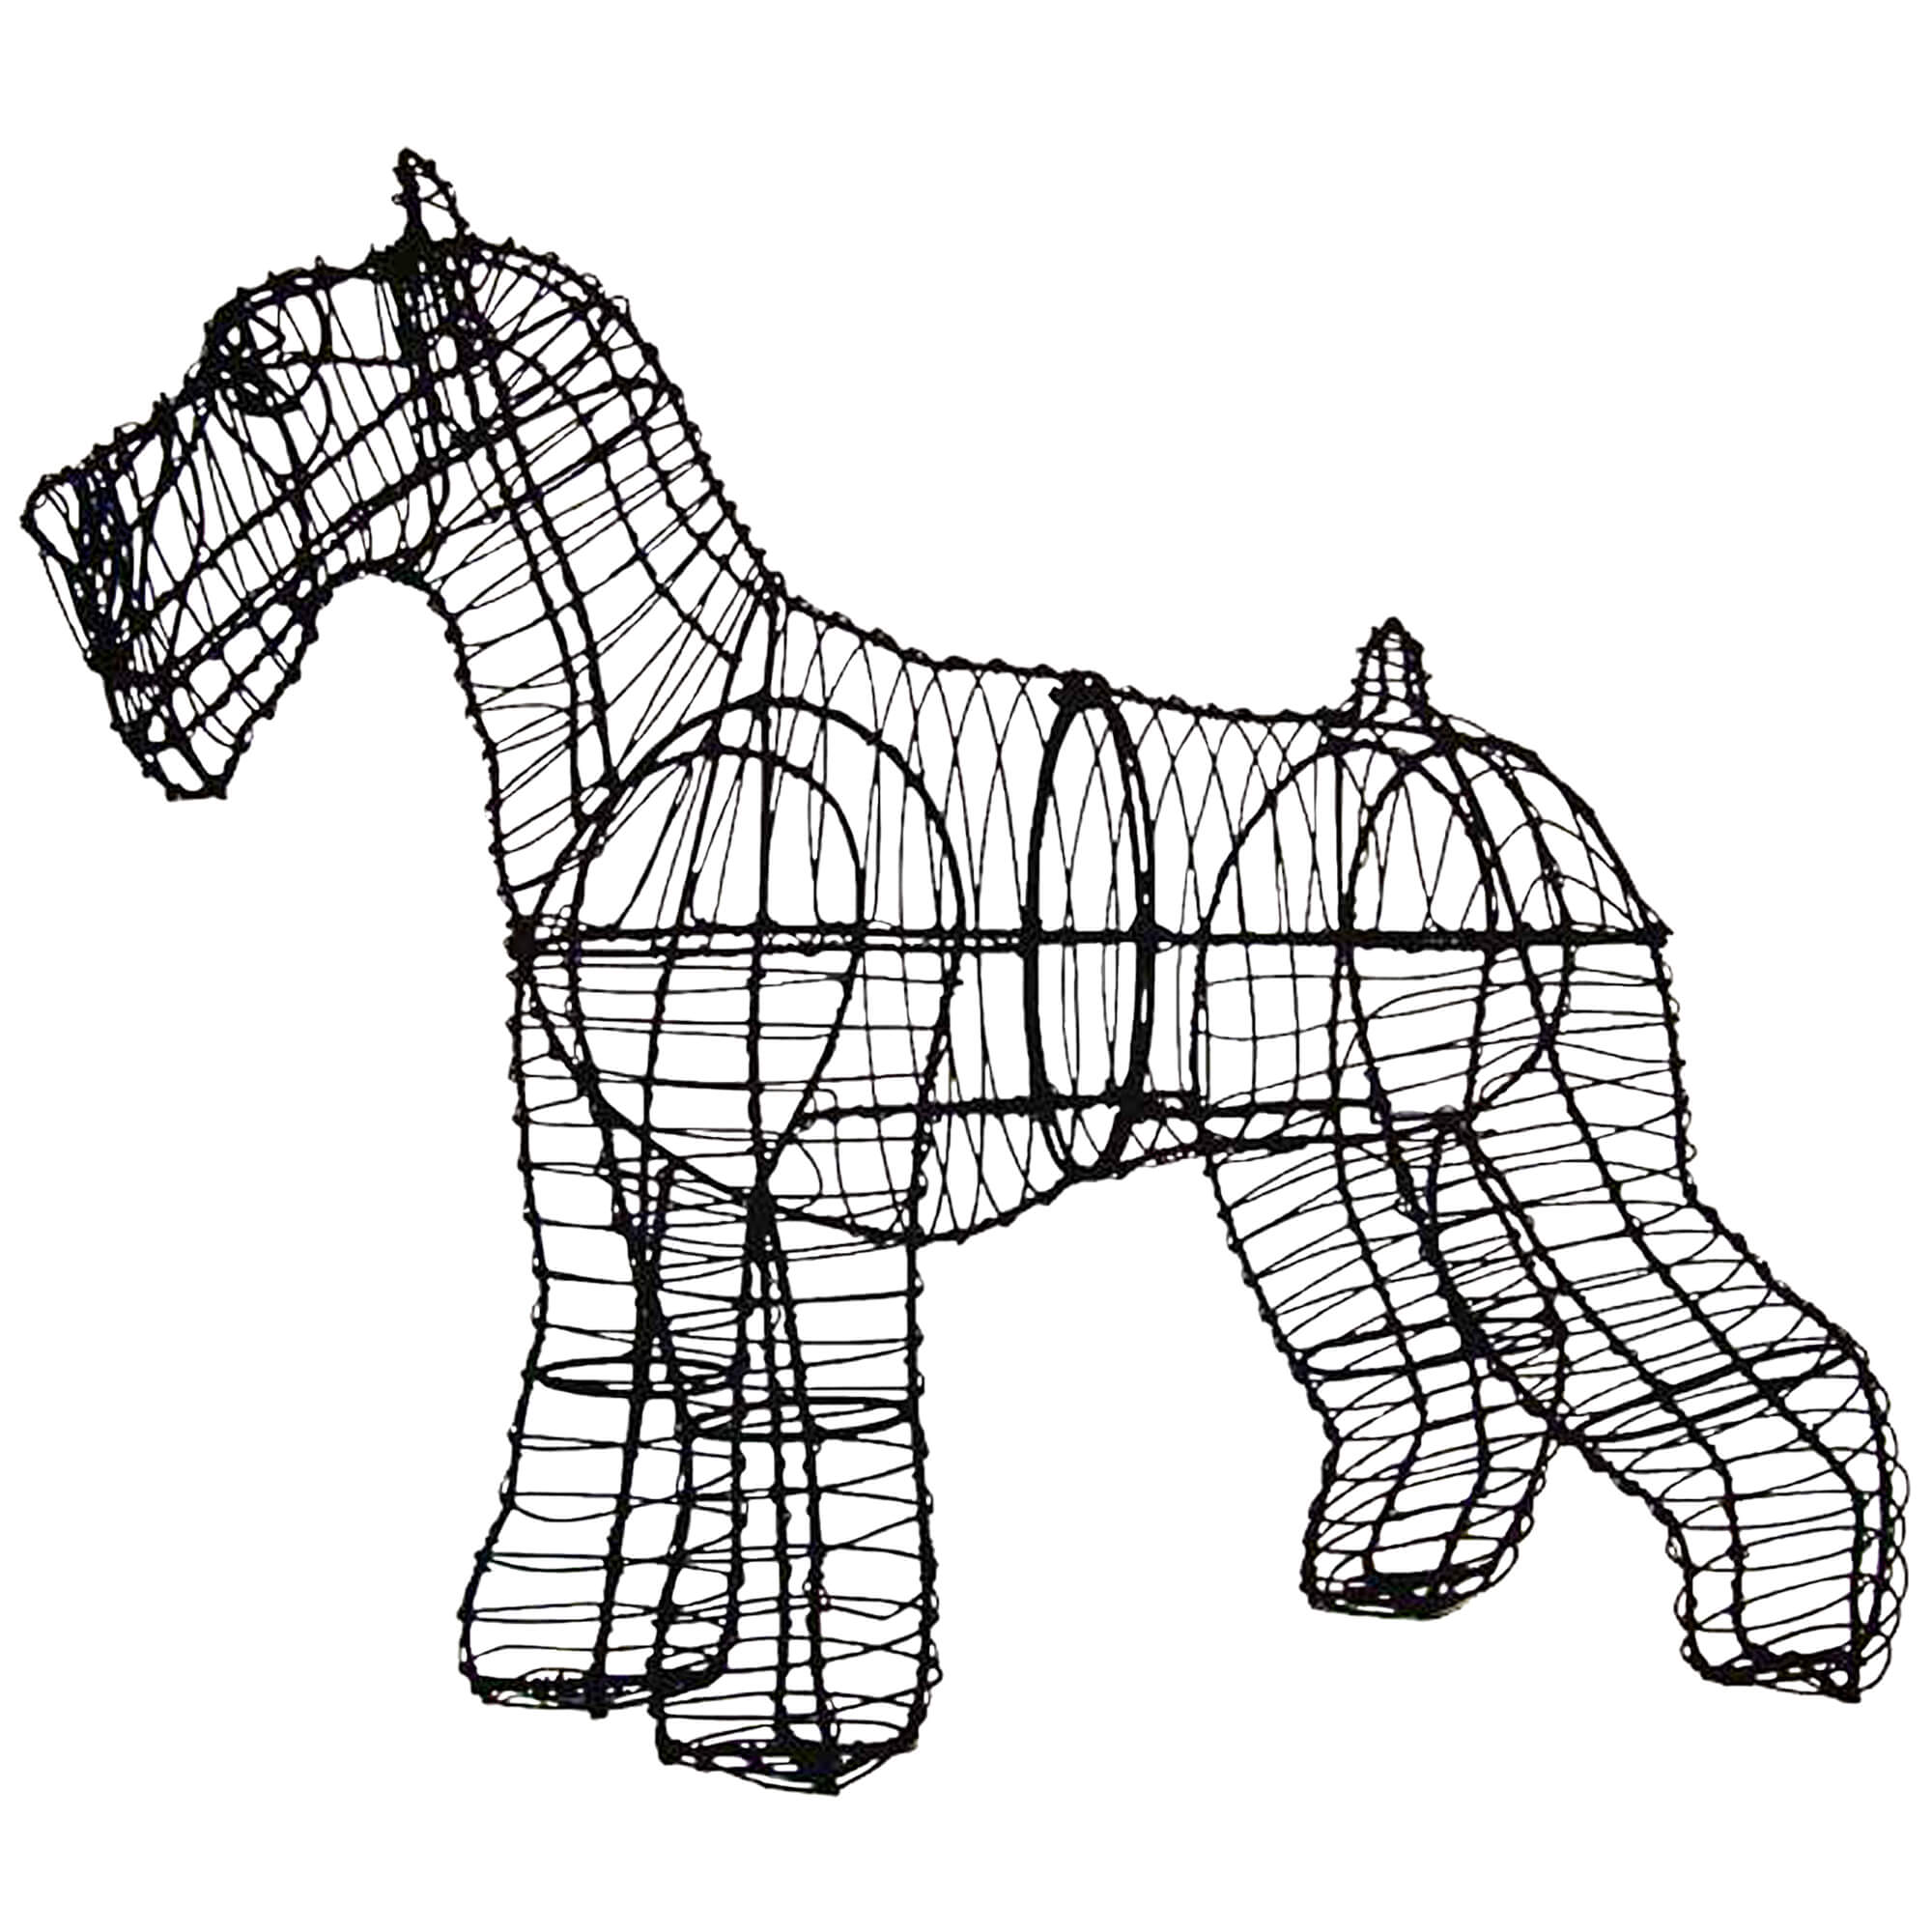 Lovely wire art rabbits images simple wiring diagram images